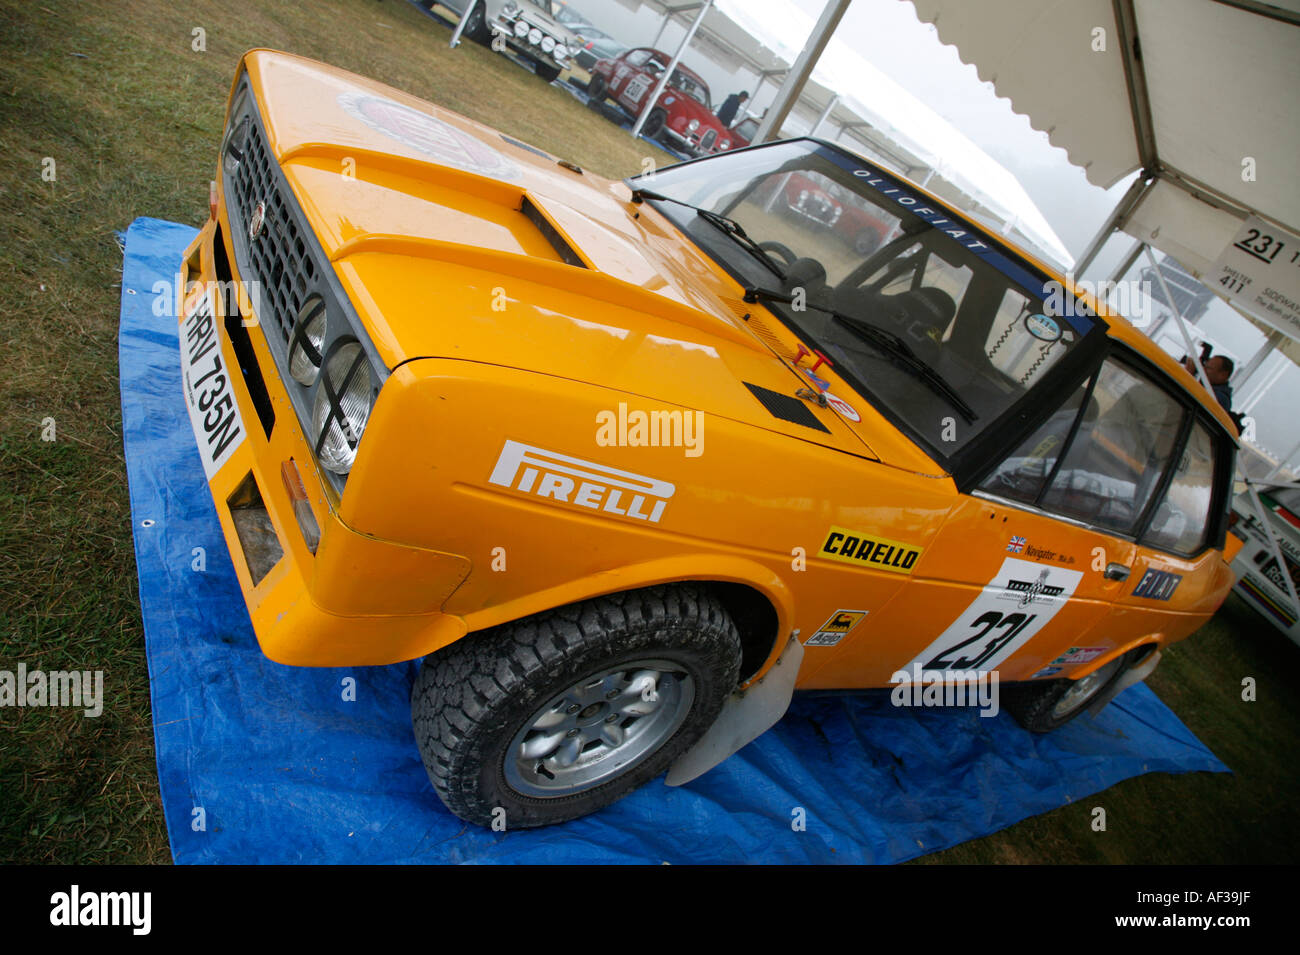 1975 Fiat 231 Abarth in the paddock area at the Goodwood Festival of Speed, Sussex, England. - Stock Image